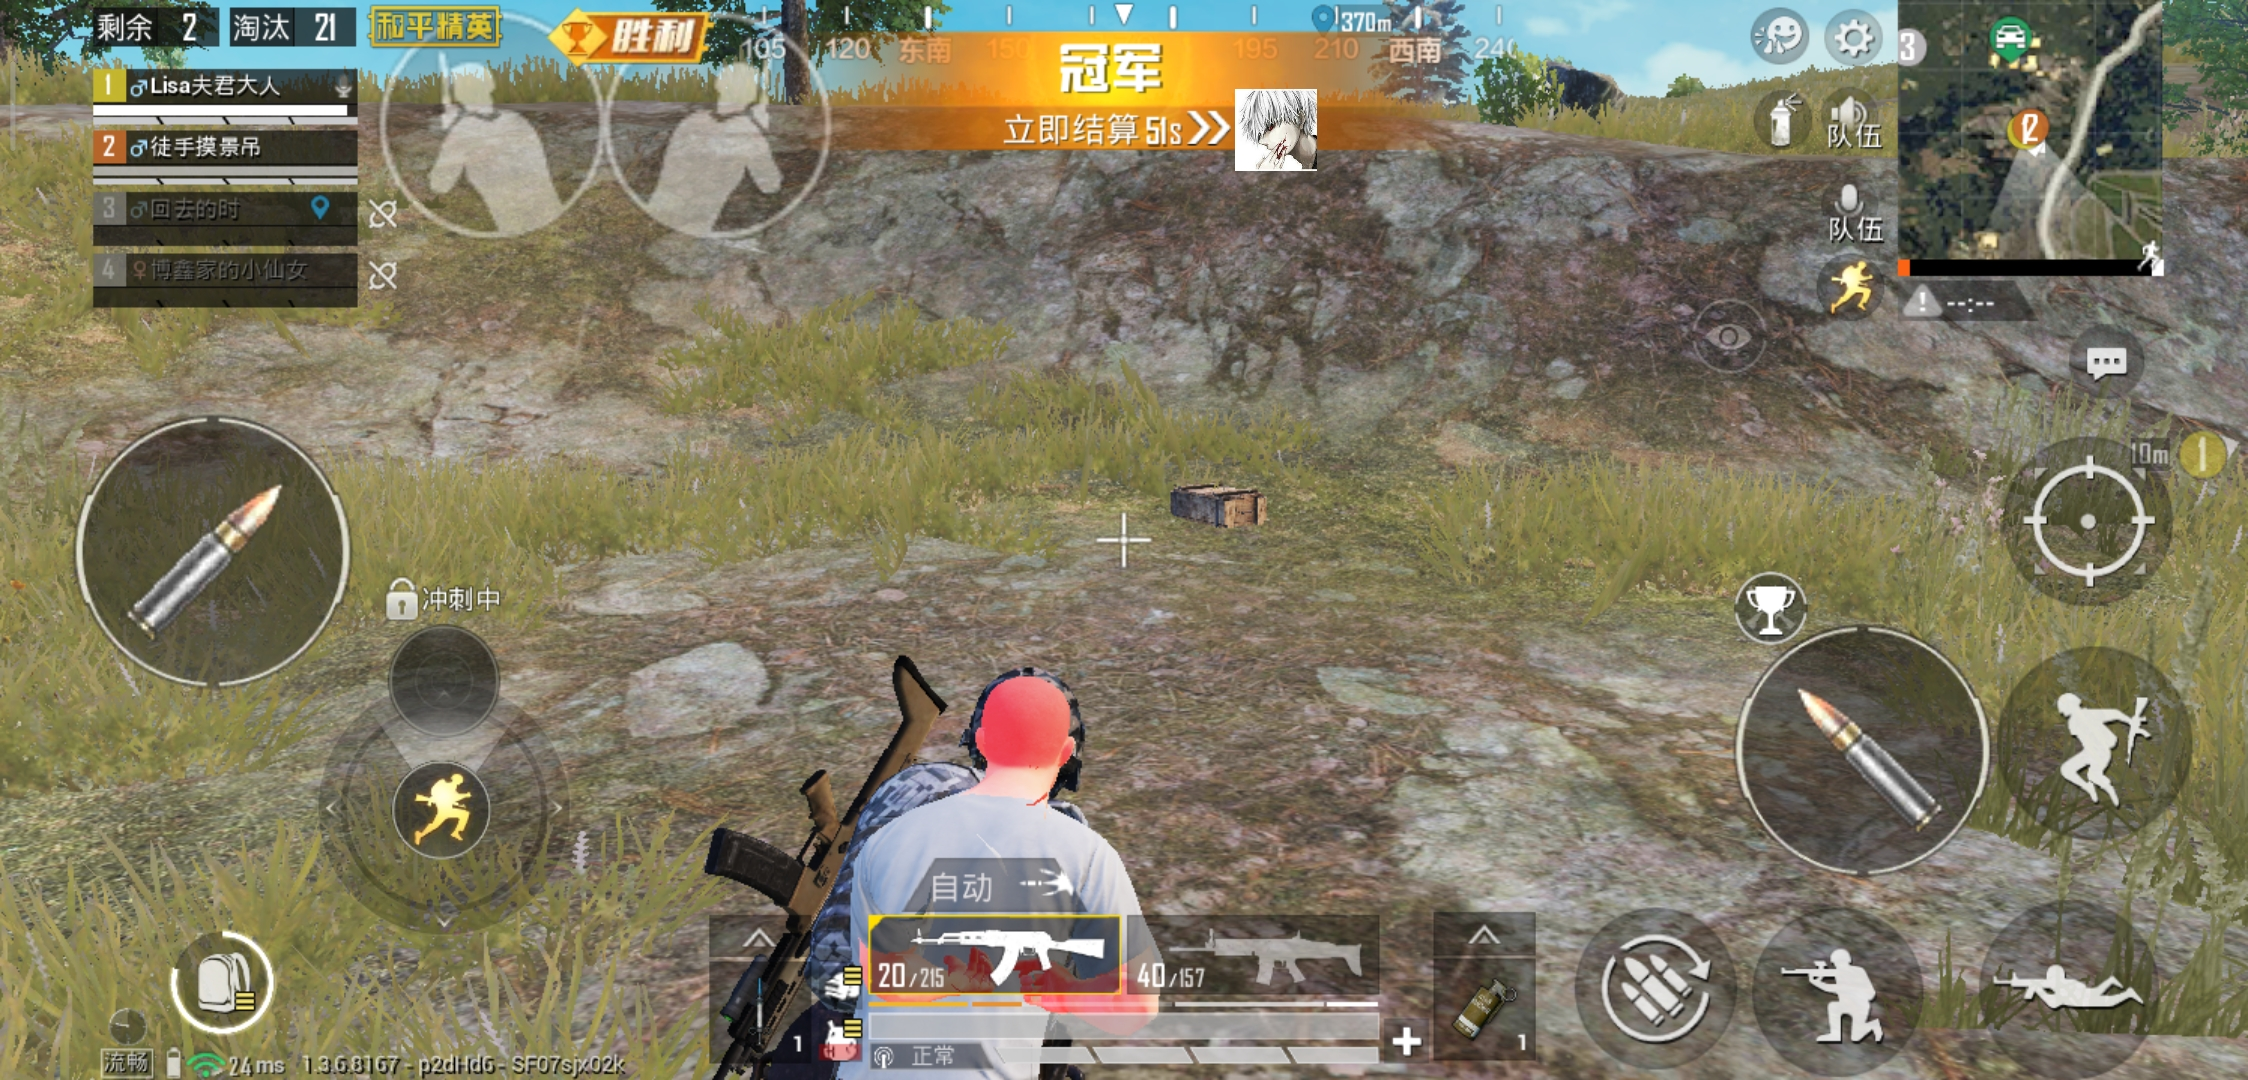 Screenshot_2019-09-15-22-51-14-475_com.tencent.tmgp.pubgmhd.jpg